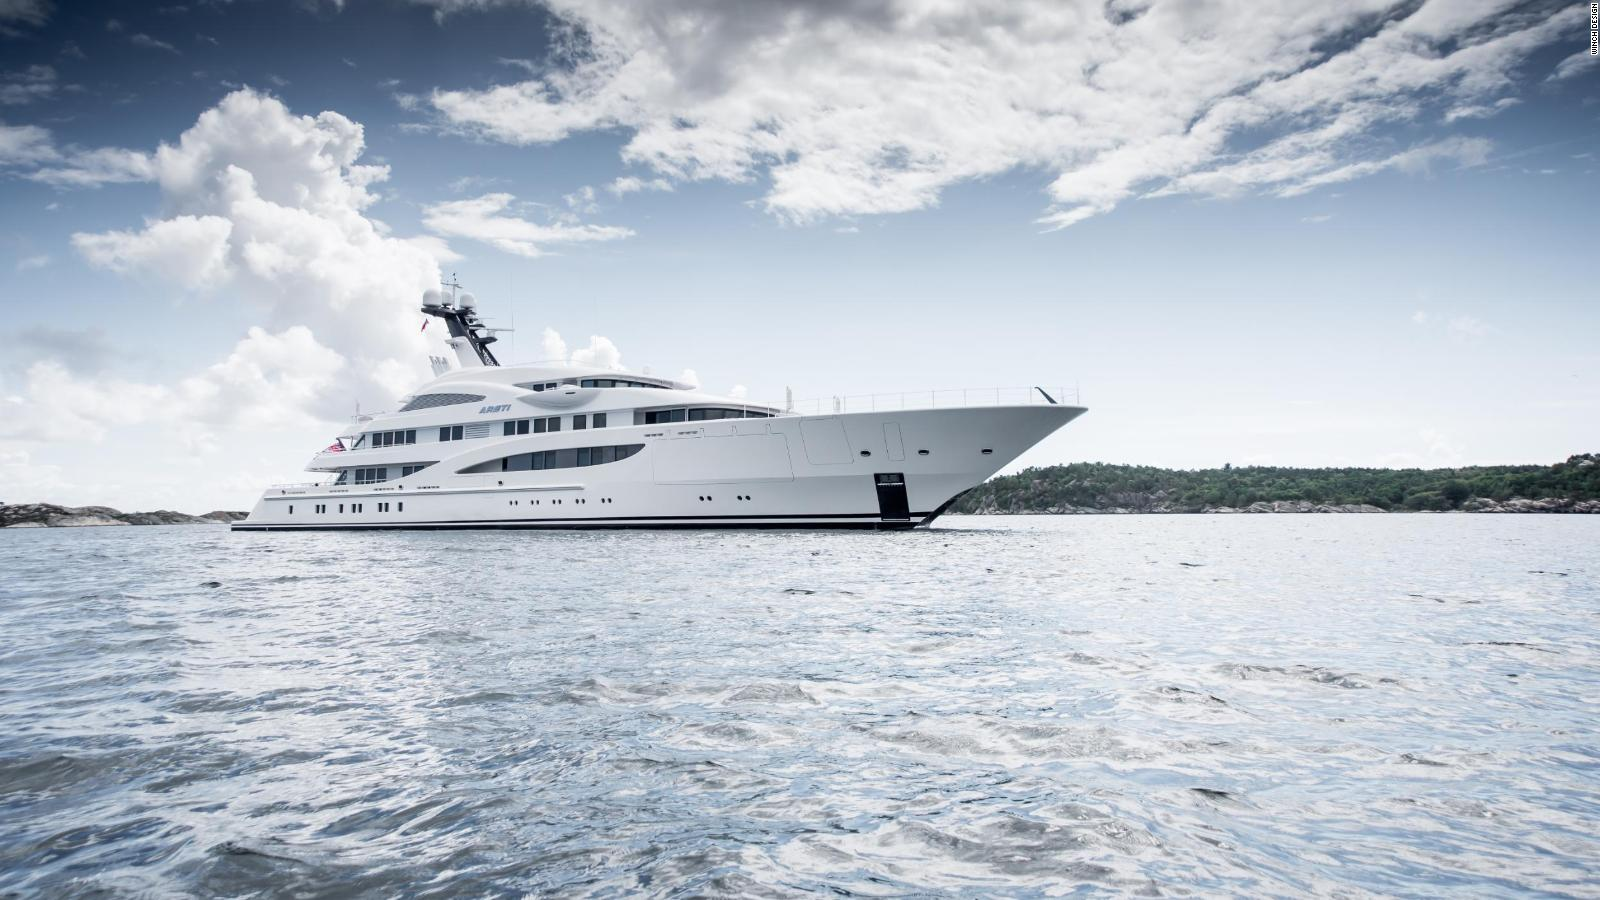 10Incredibly Cool Yachts We'll Buy When WeBecome Billionaires